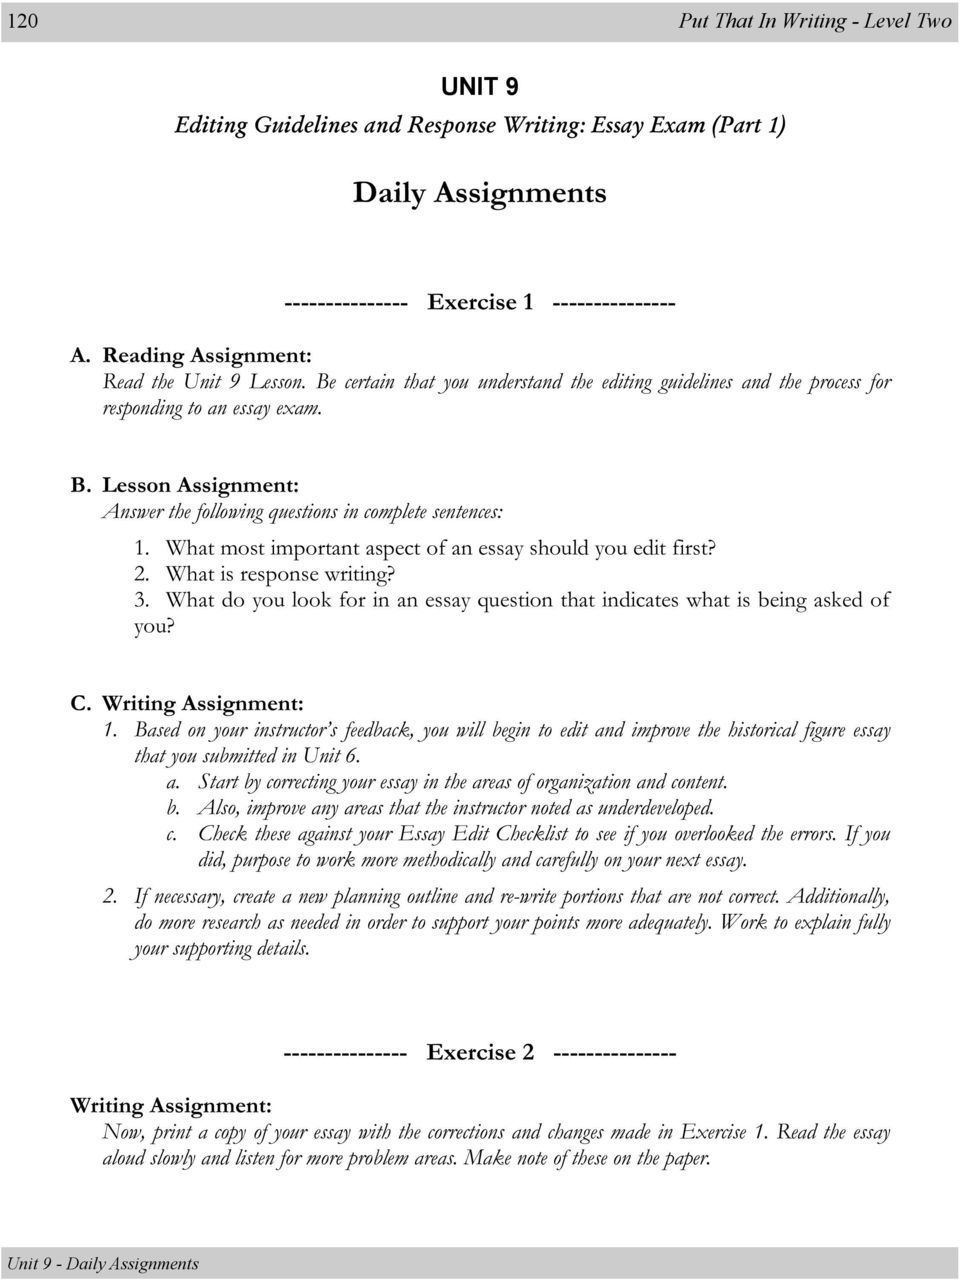 Lesson: Editing Guidelines and Response Writing: Essay Exam